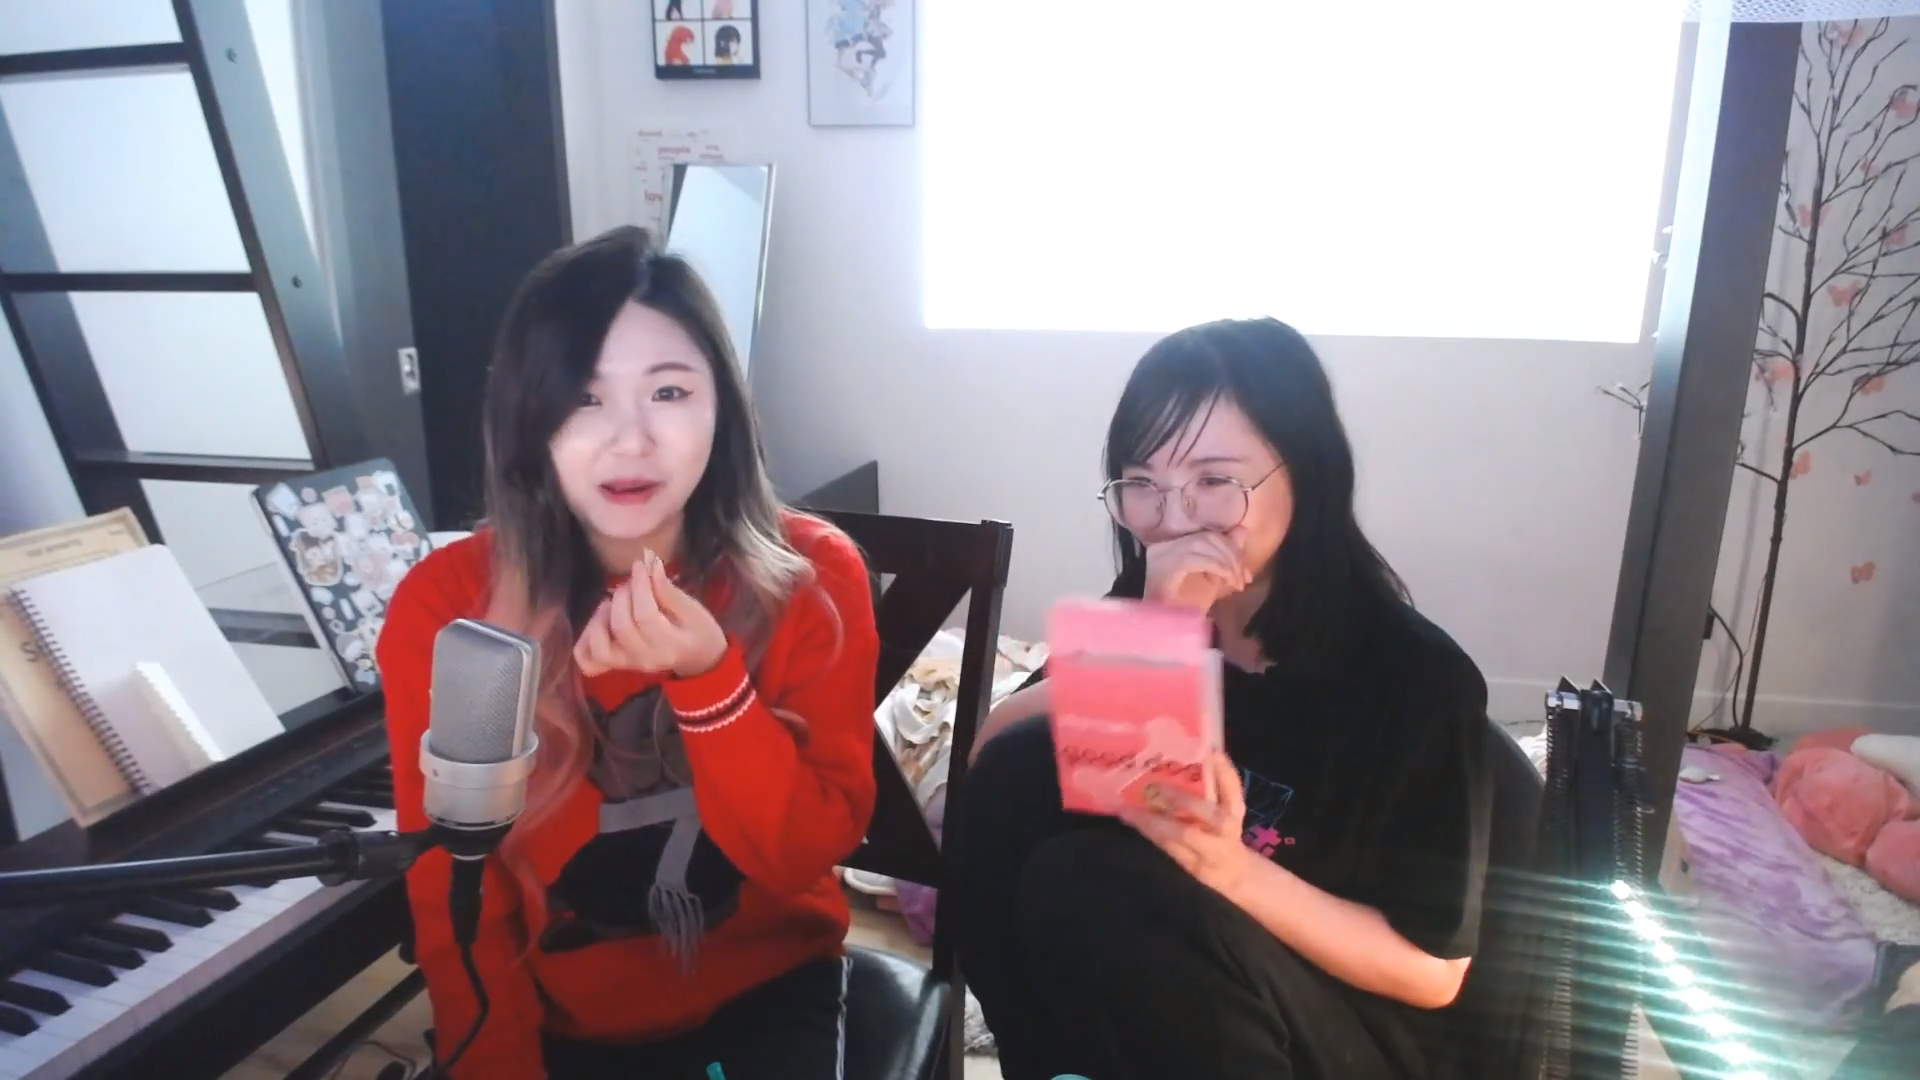 HAchubby and LilyPichu on Twitch stream